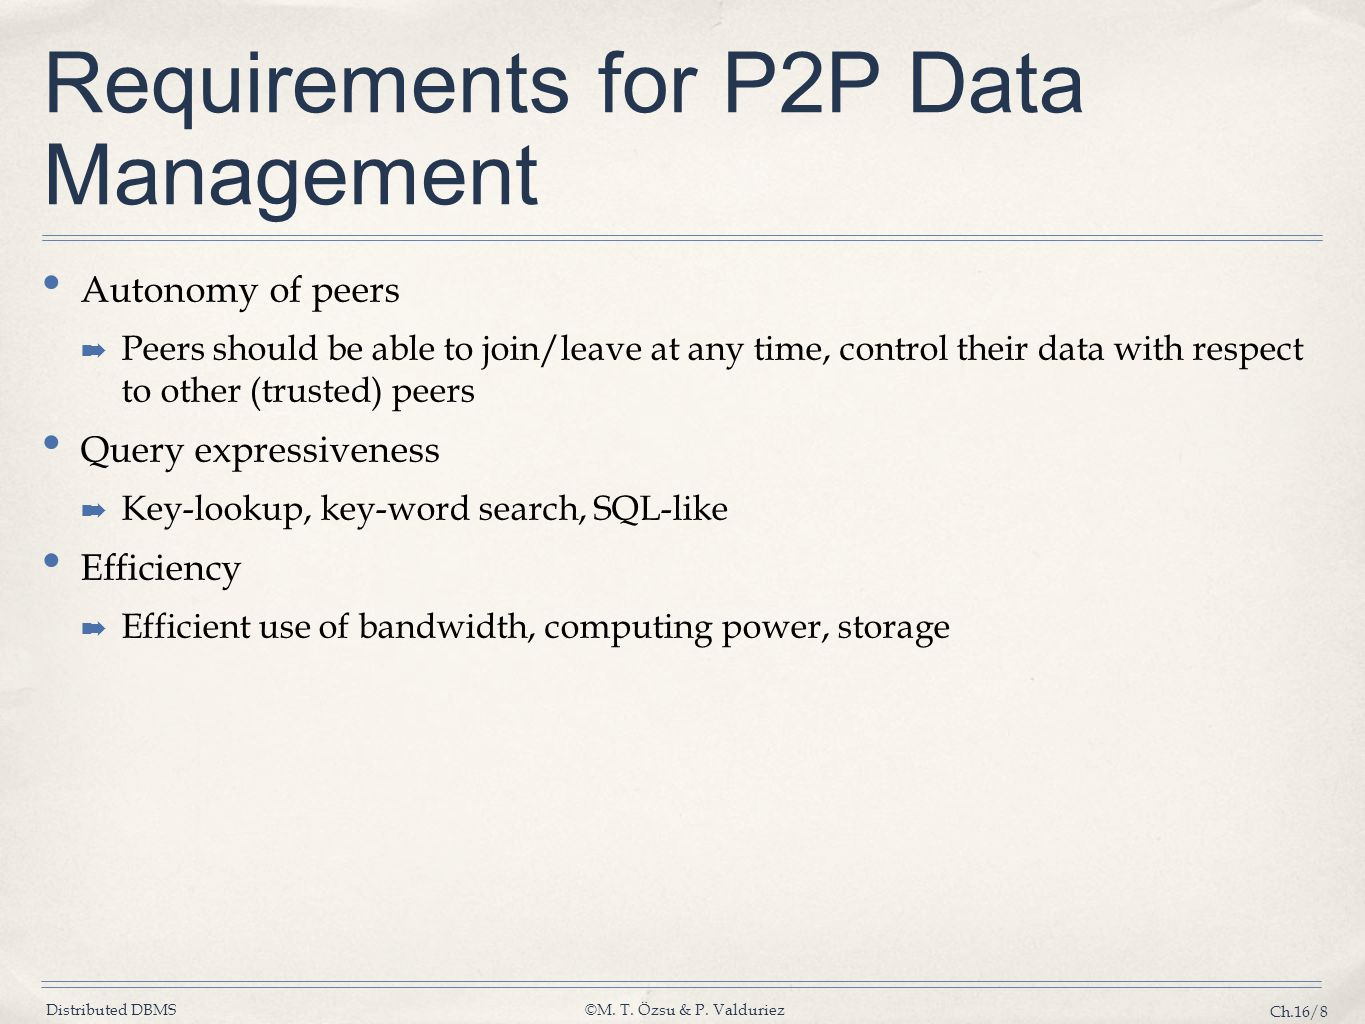 Requirements for P2P Data Management